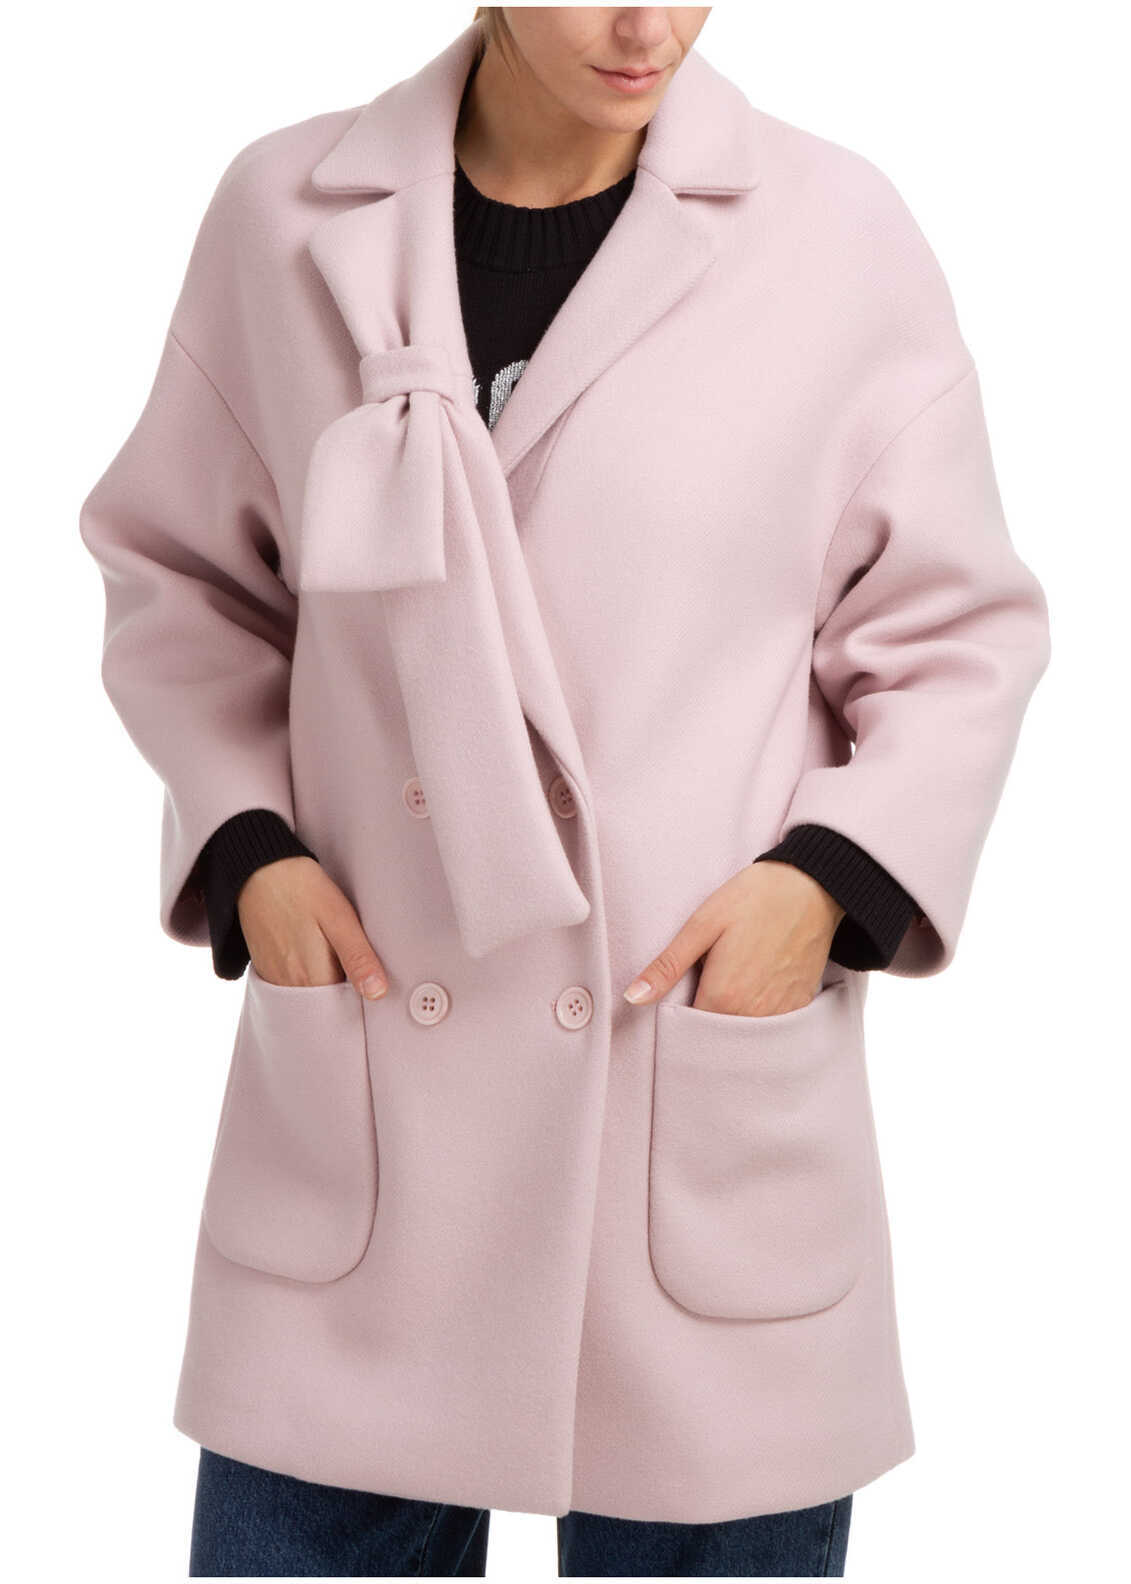 RED VALENTINO Coat Overcoat WR3CAD605Y6R13 Pink image0